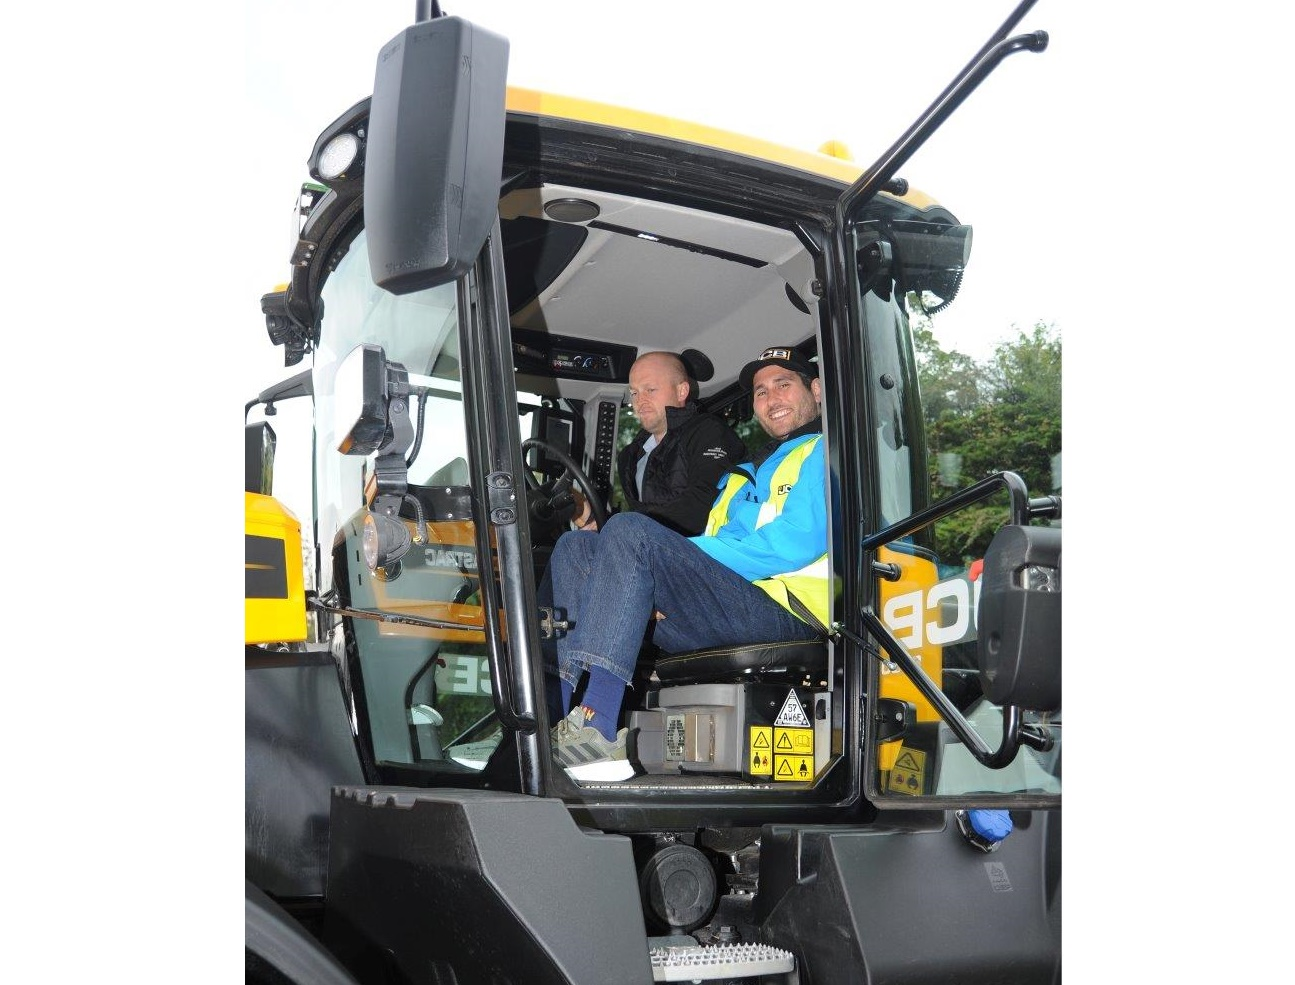 Hospice patient fulfils bucket list wish of riding a JCB